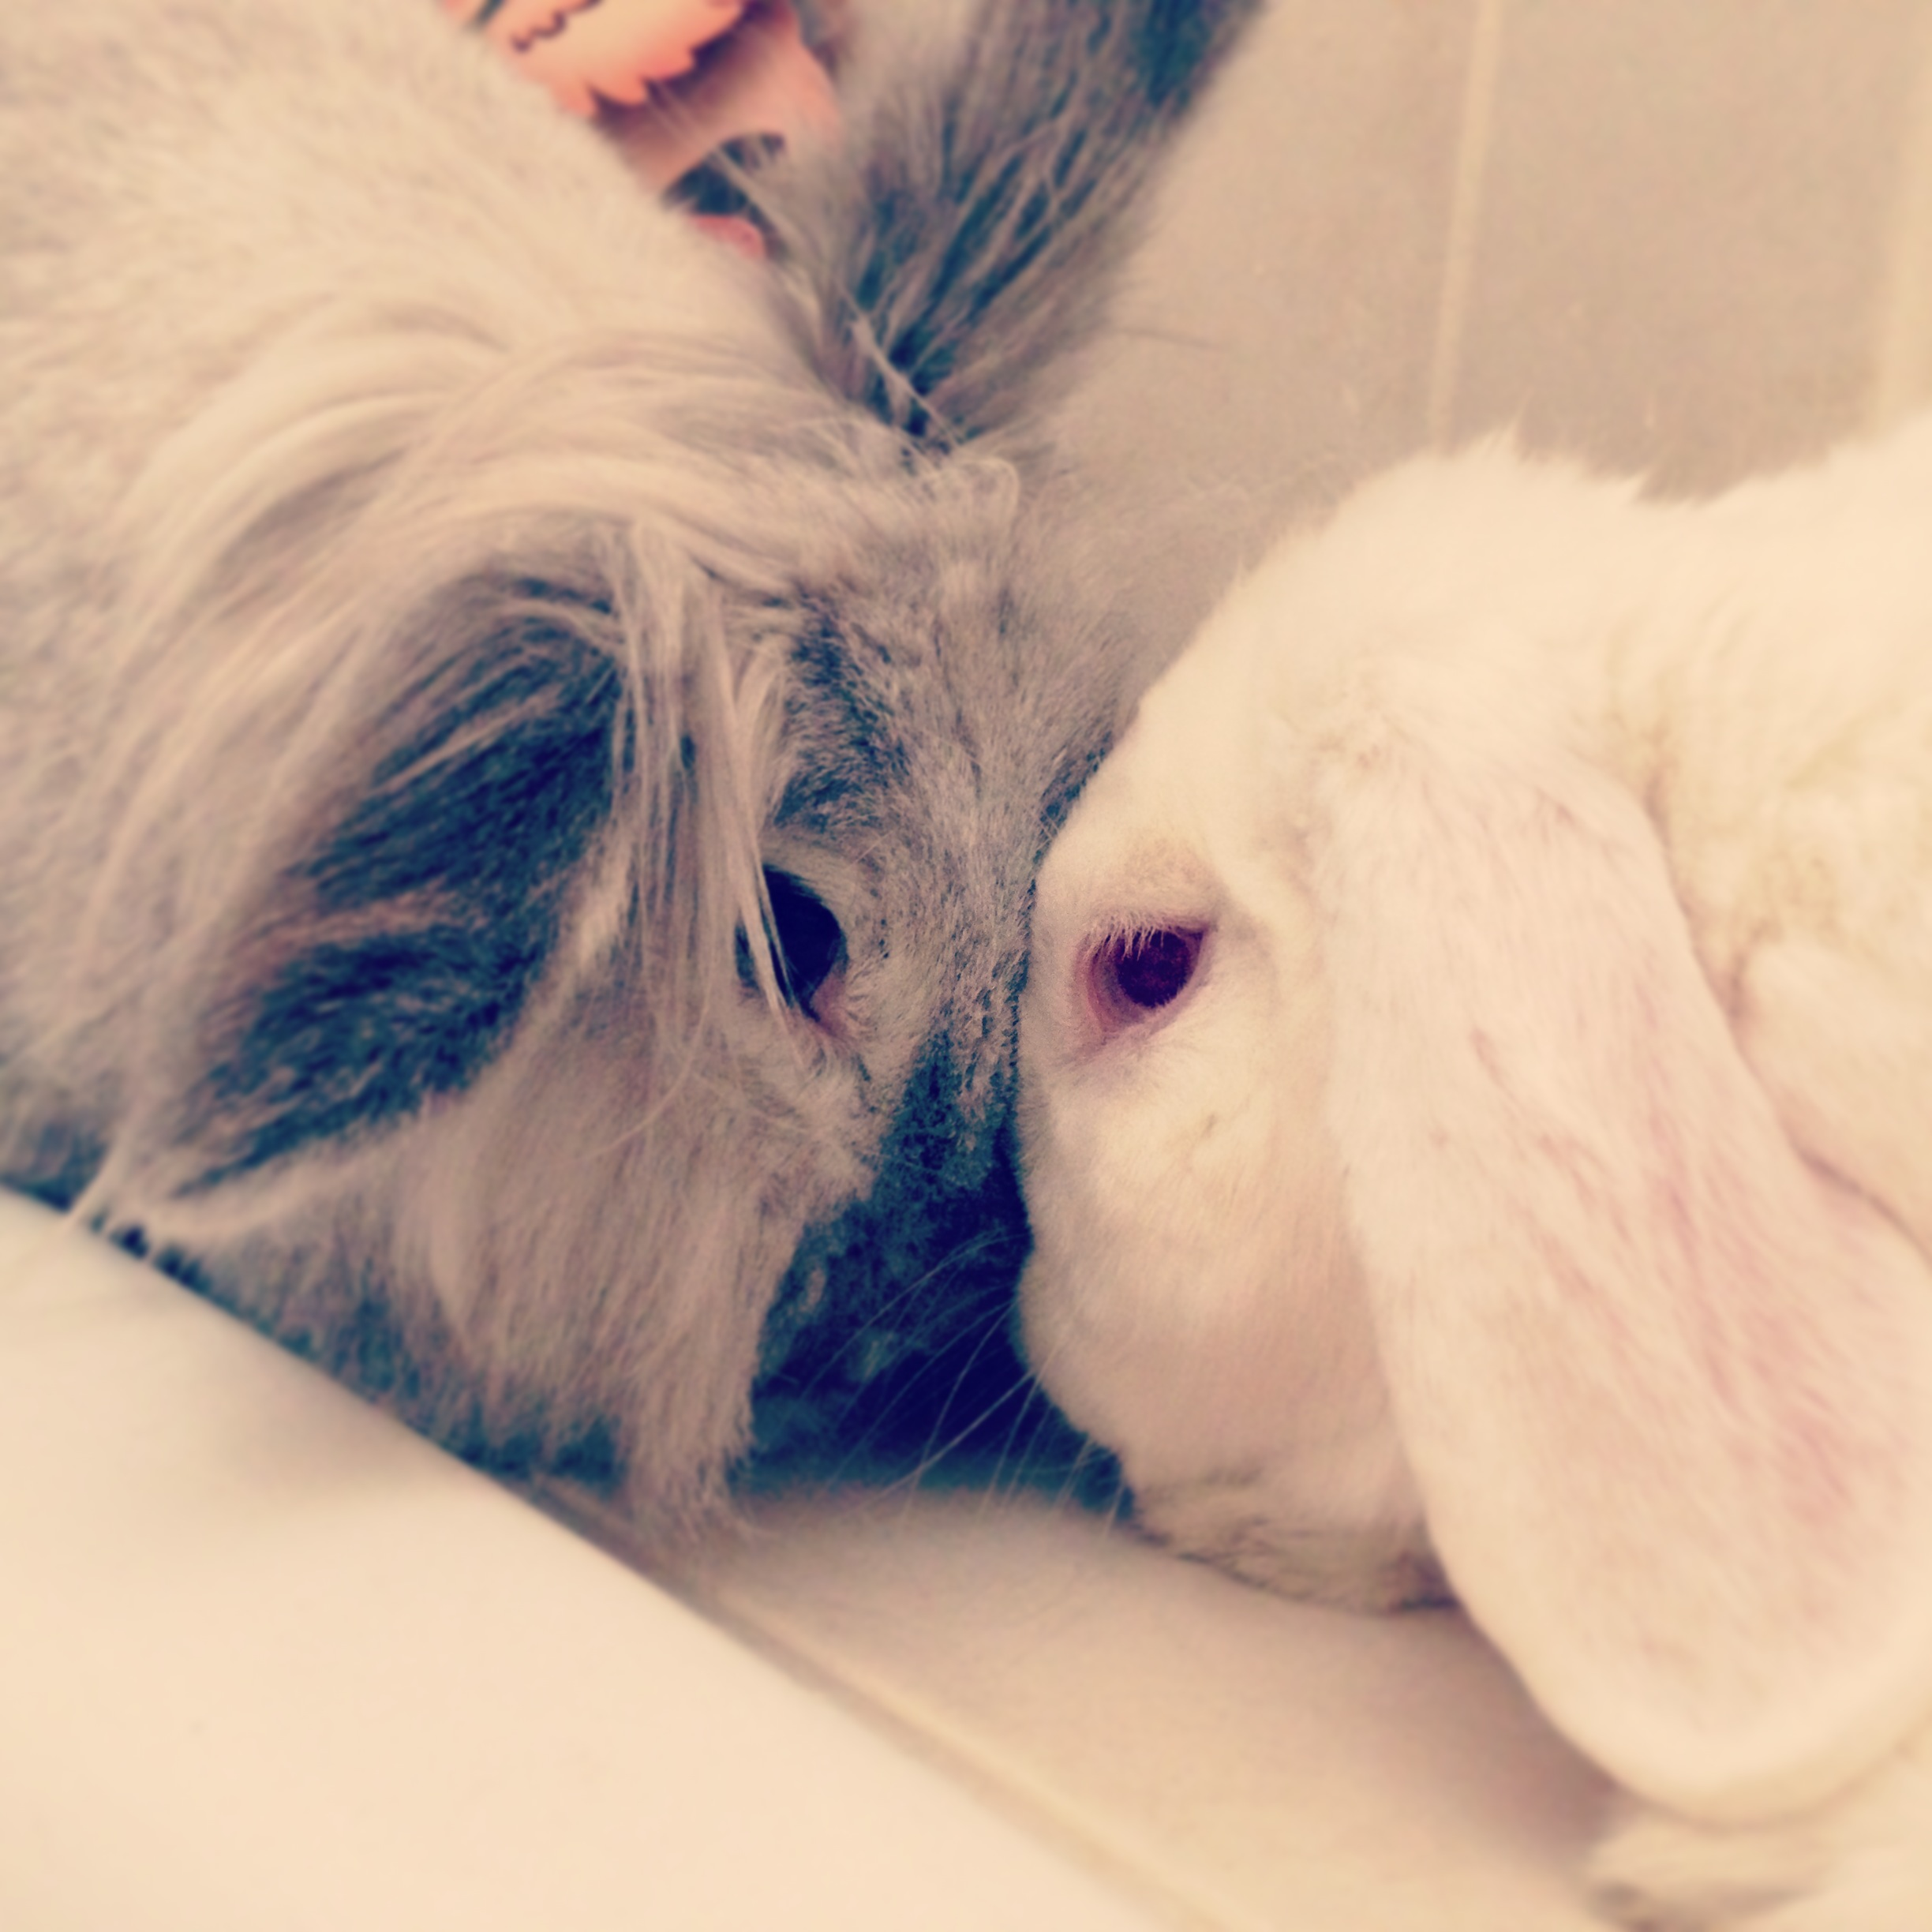 Bunnies Share a Sweet Moment with a Head Nuzzle